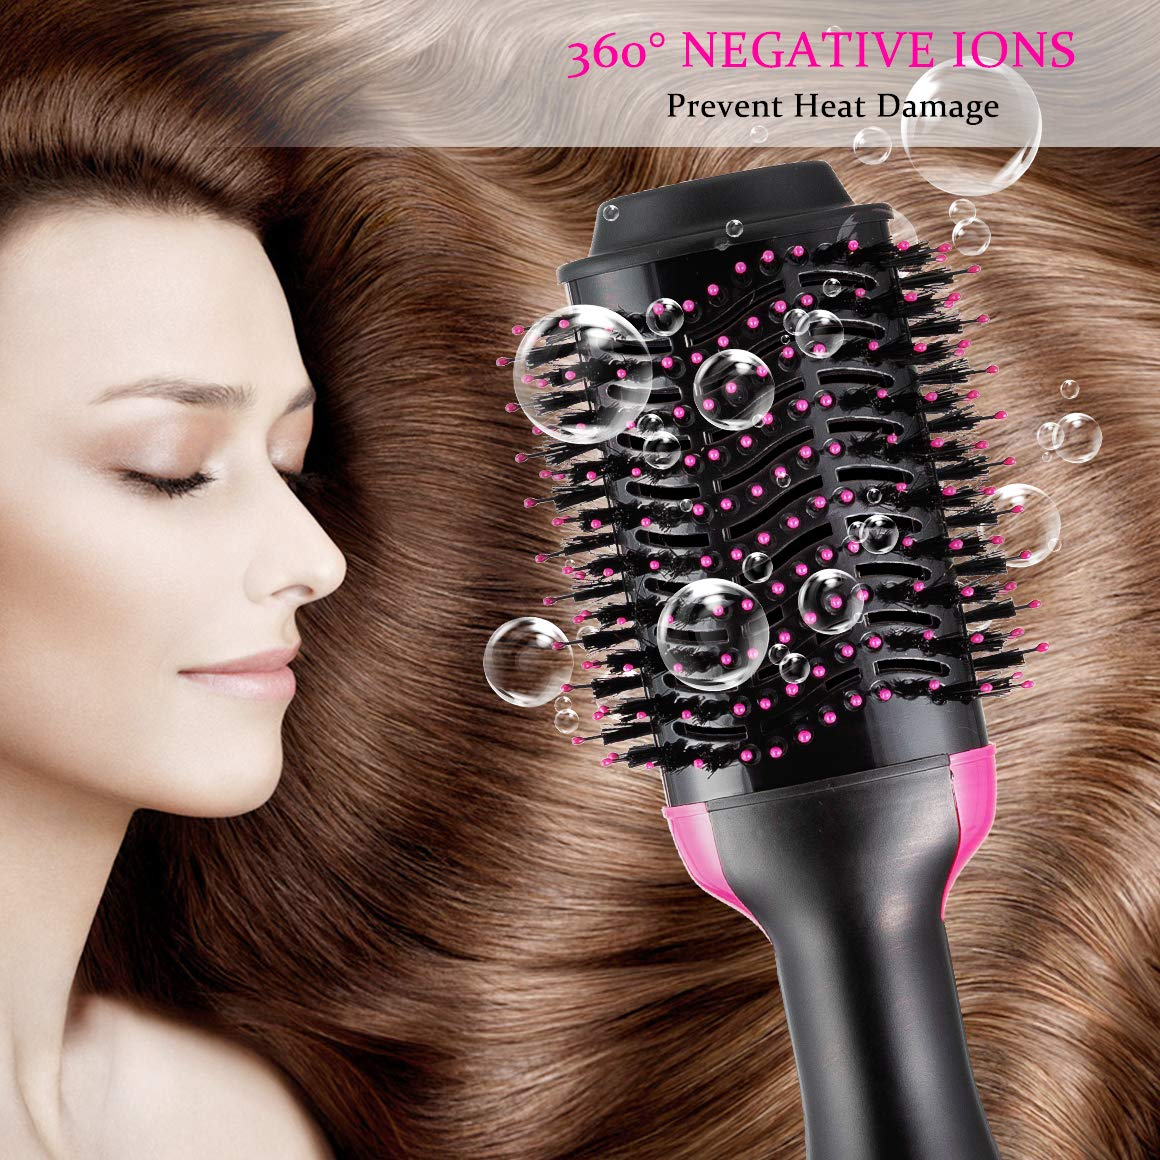 One Step Hair Dryer & Volumizer, Hot Air Brush All In One Hair Brush and Dryer Professional Negative Ion Hair Hot Comb, Black by Gelma (Image #5)